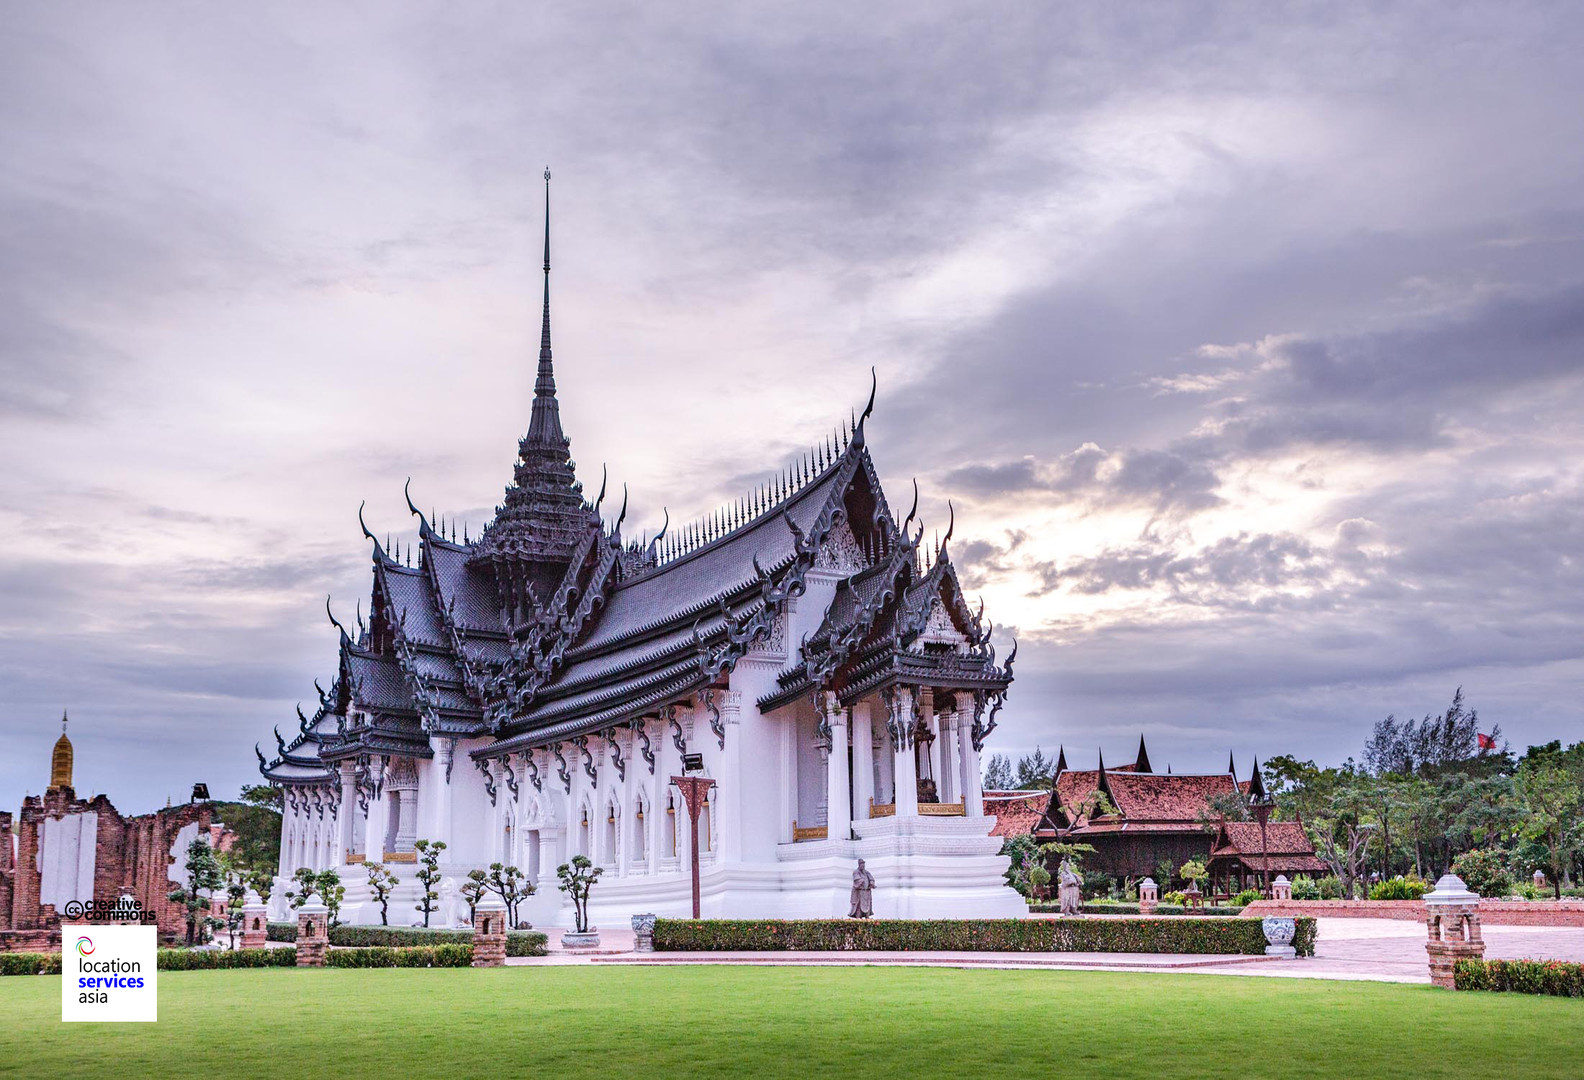 thai film locations attractions d.jpg